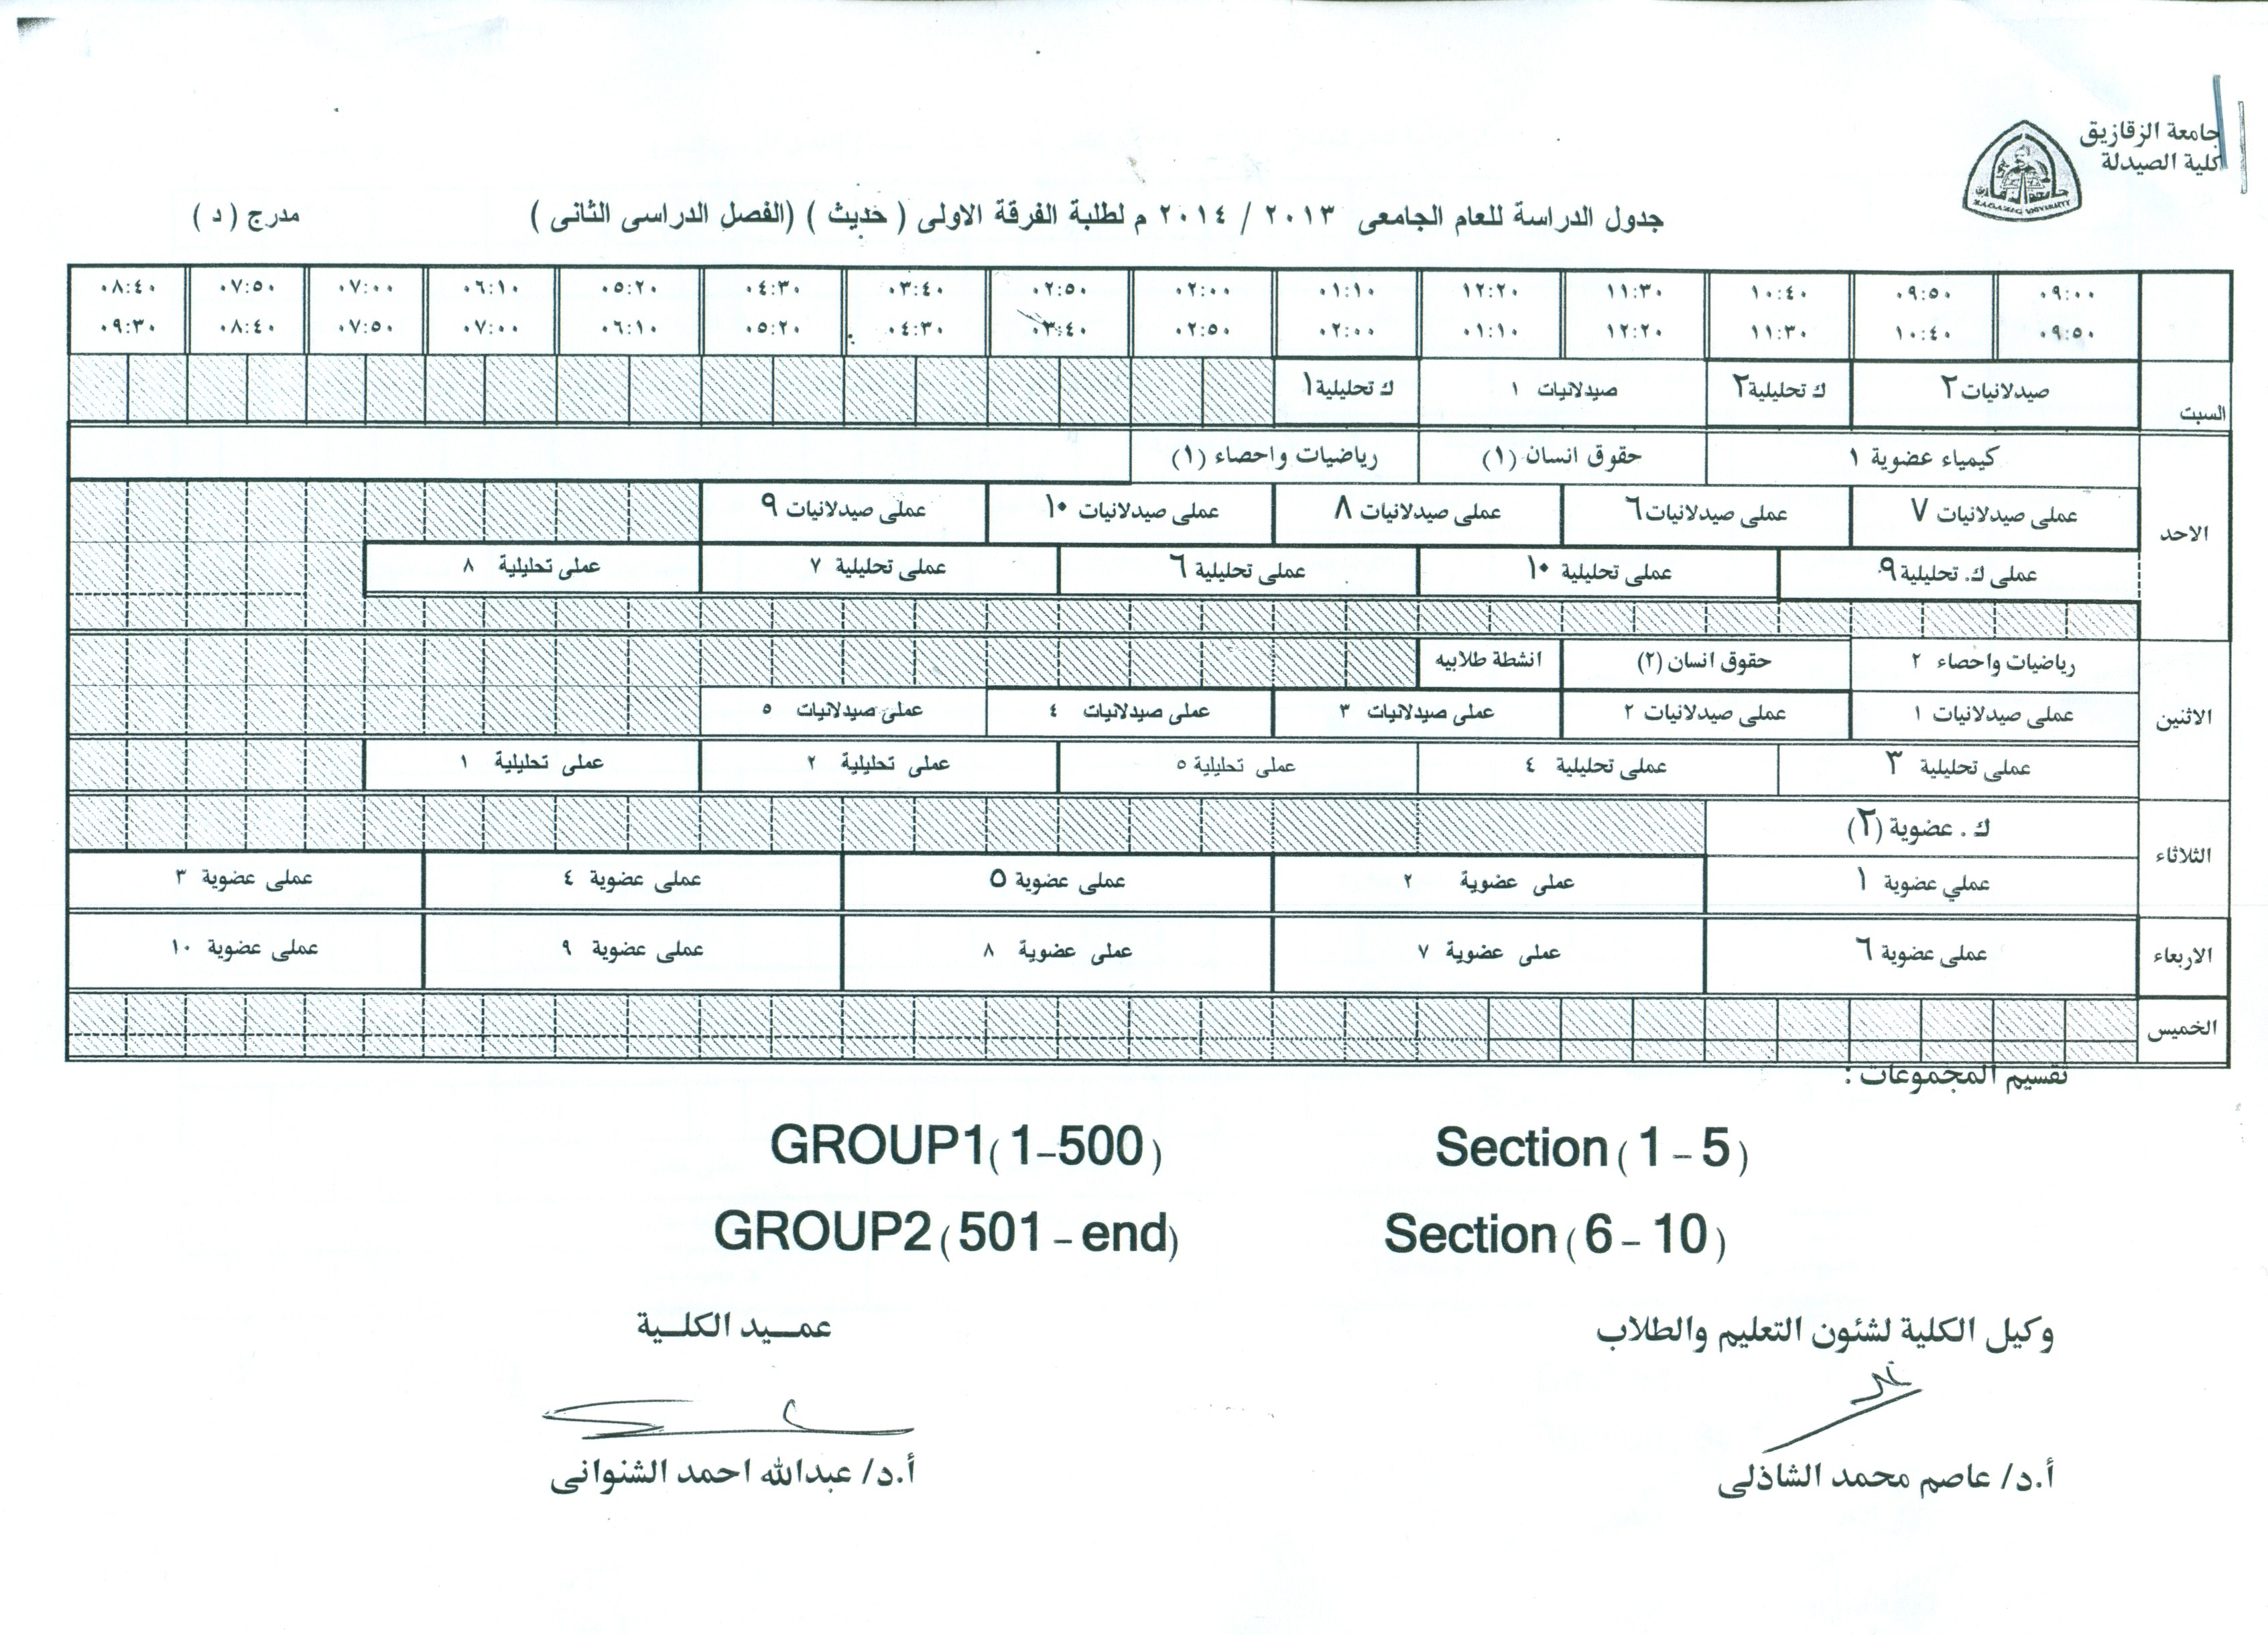 Tables for the academic year 2013/2014 for all teams the second semester